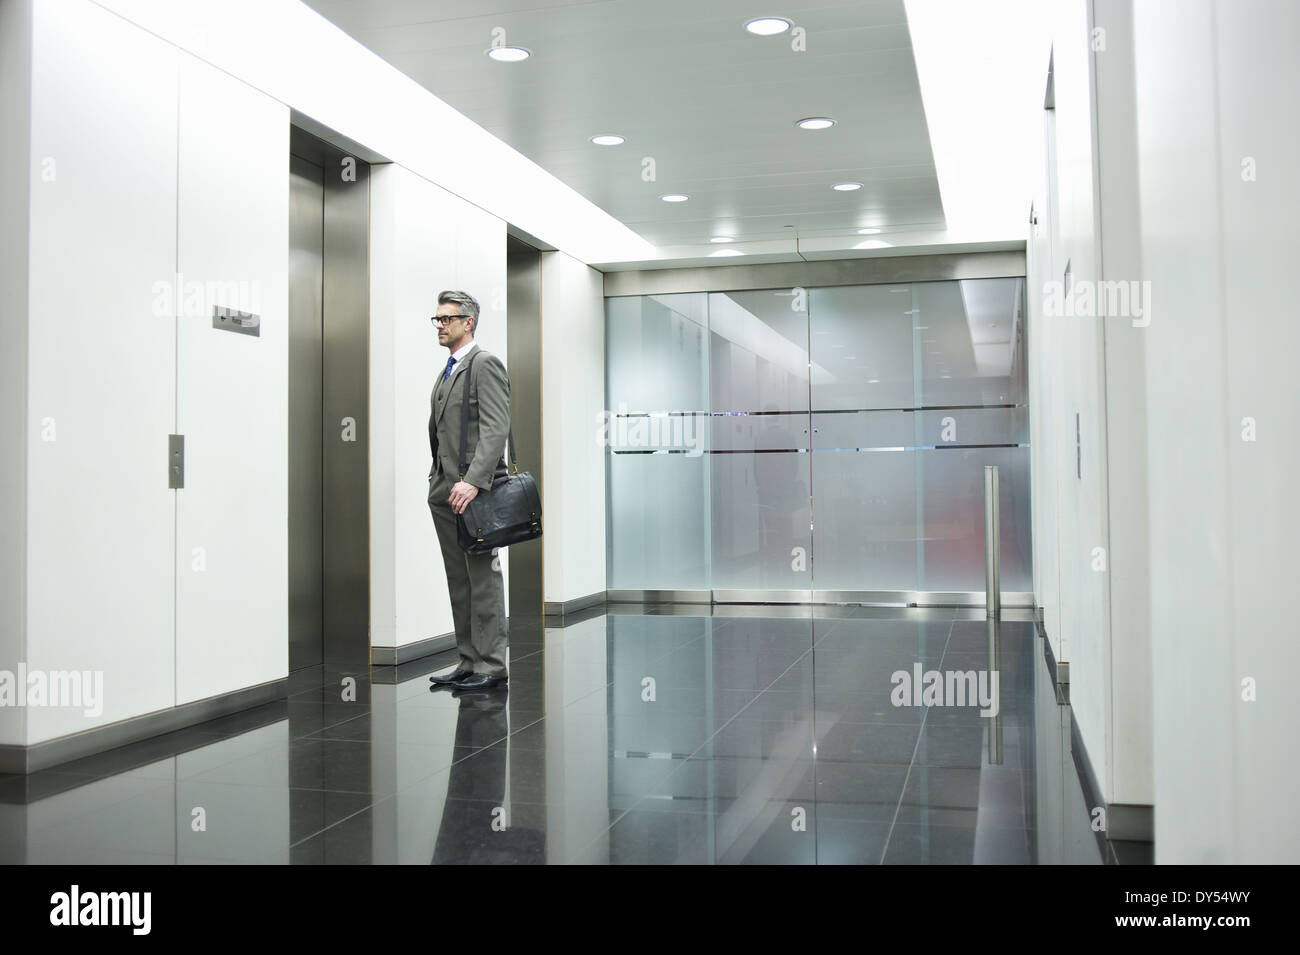 Businessman waiting for elevator in office corridor - Stock Image